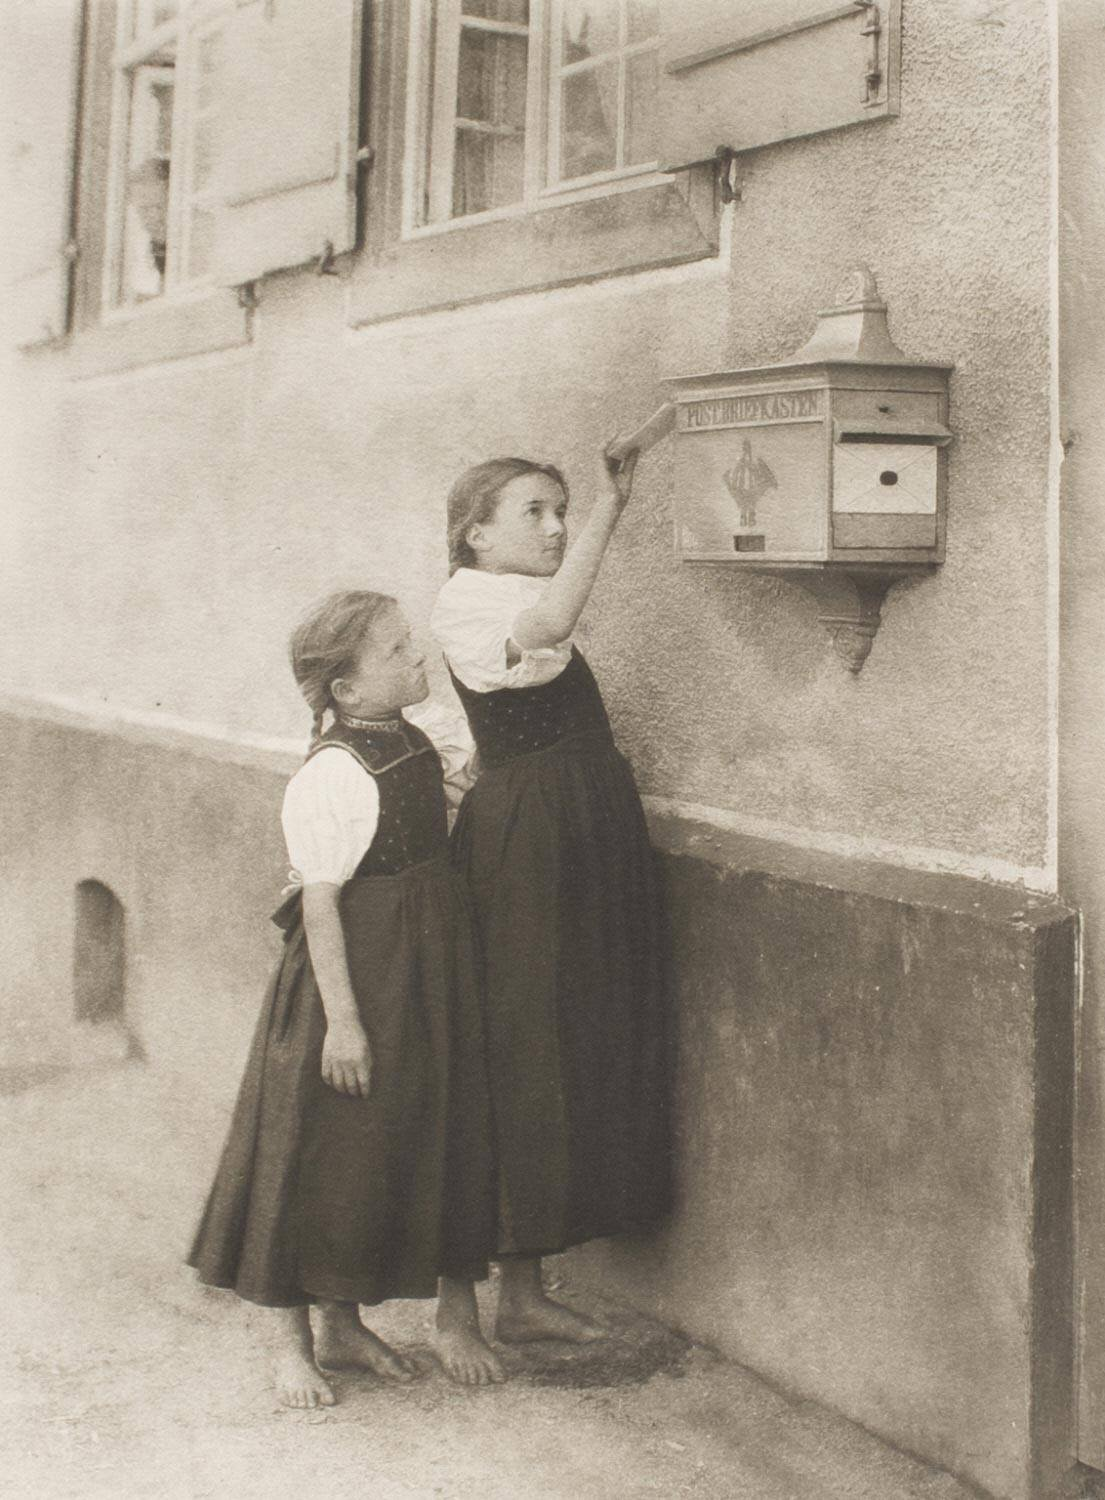 The Letter Box, by Alfred Stieglitz, 1894